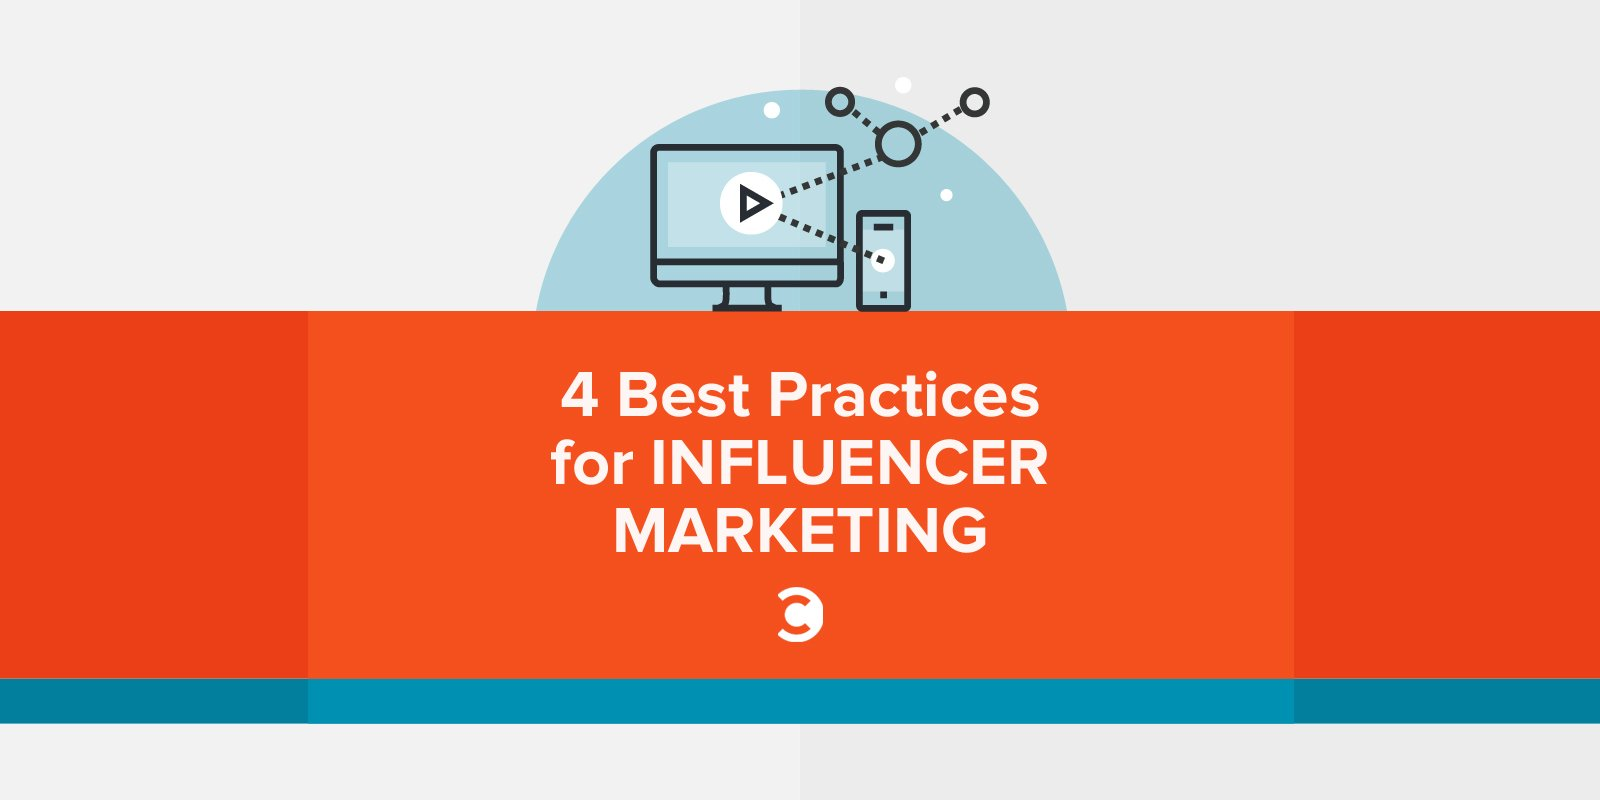 4 Best Practices for Influencer Marketing